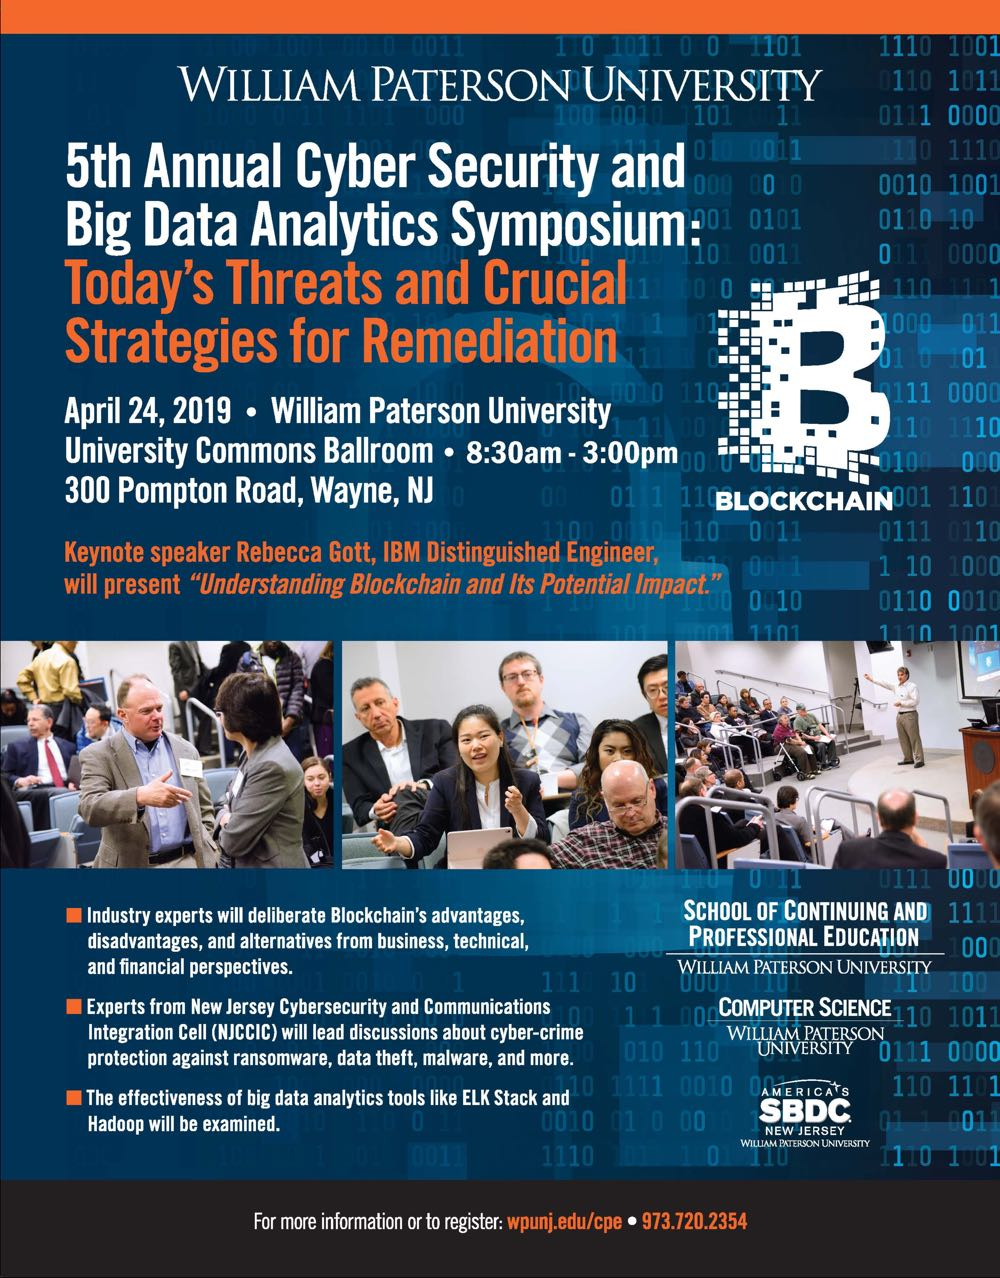 5th Annual Cyber Security and Big Data Analytics Symposium